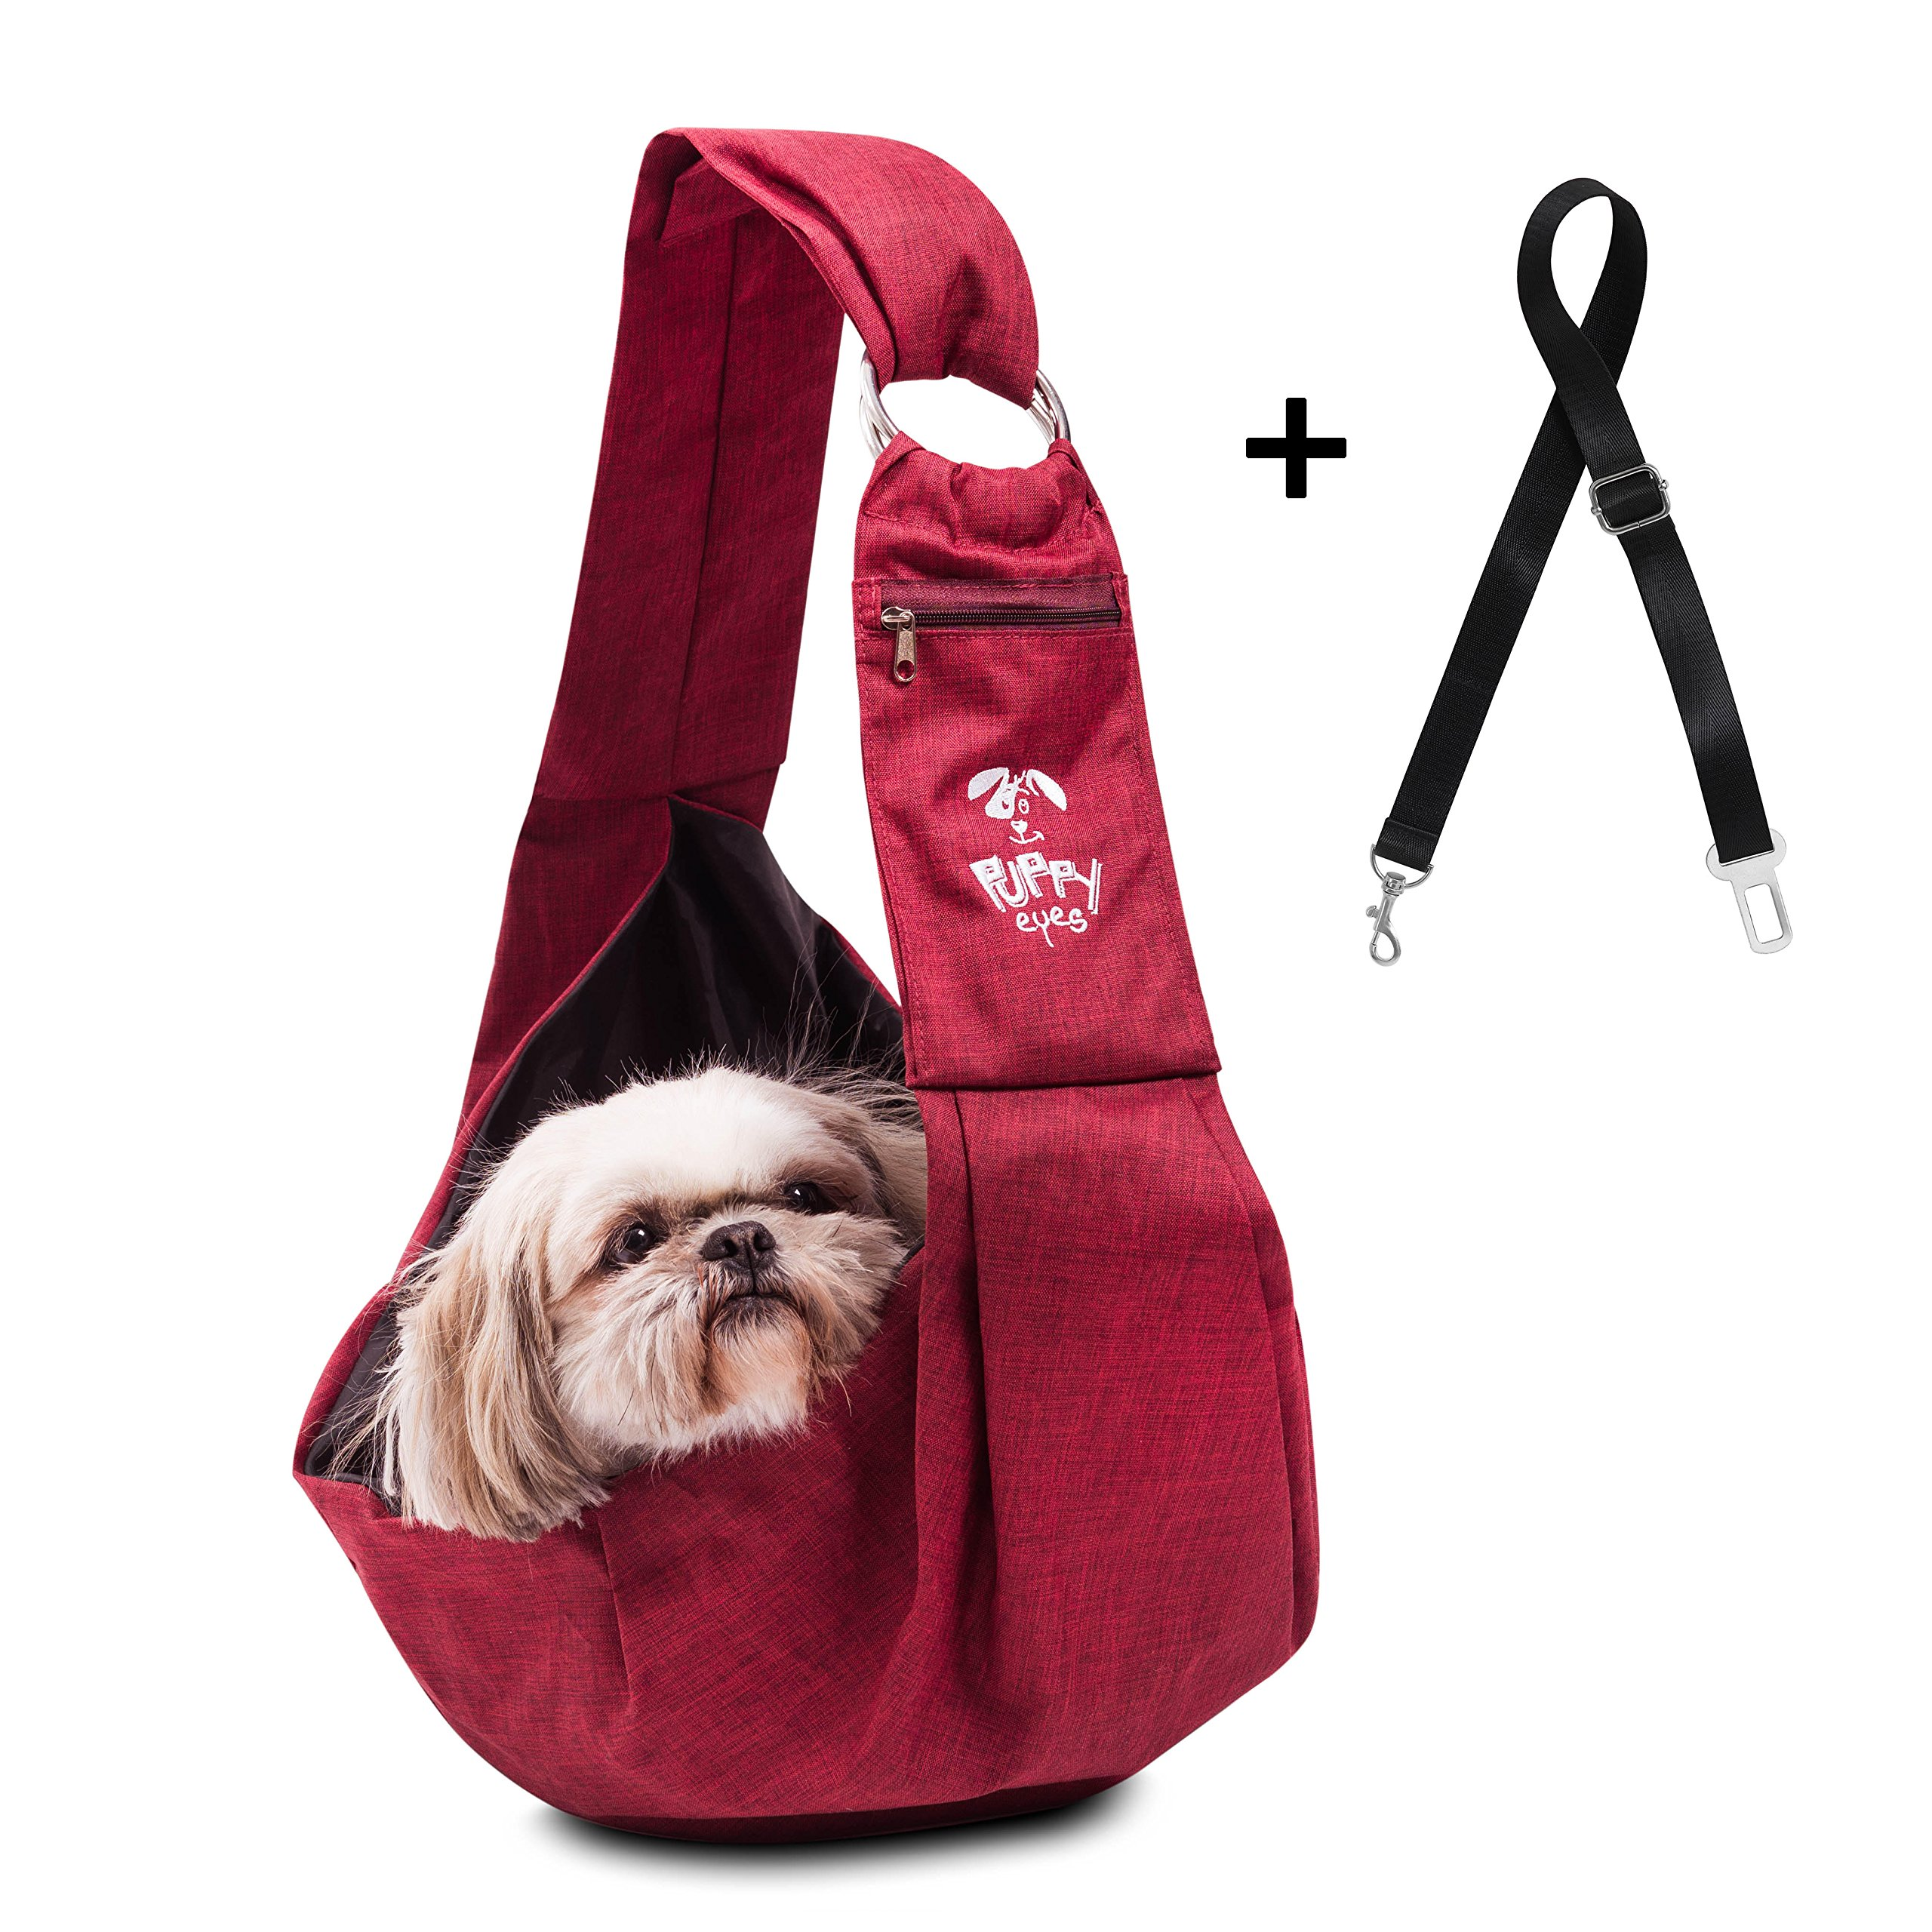 Puppy Eyes Waterproof Pet Carrier Sling Comfortable and Adjustable Dog Sling Ideal for Small & Medium Dogs up to 16 lb - Lightweight & Easy-Care Dog Carrier with Bonus car seat Belt and E-Book